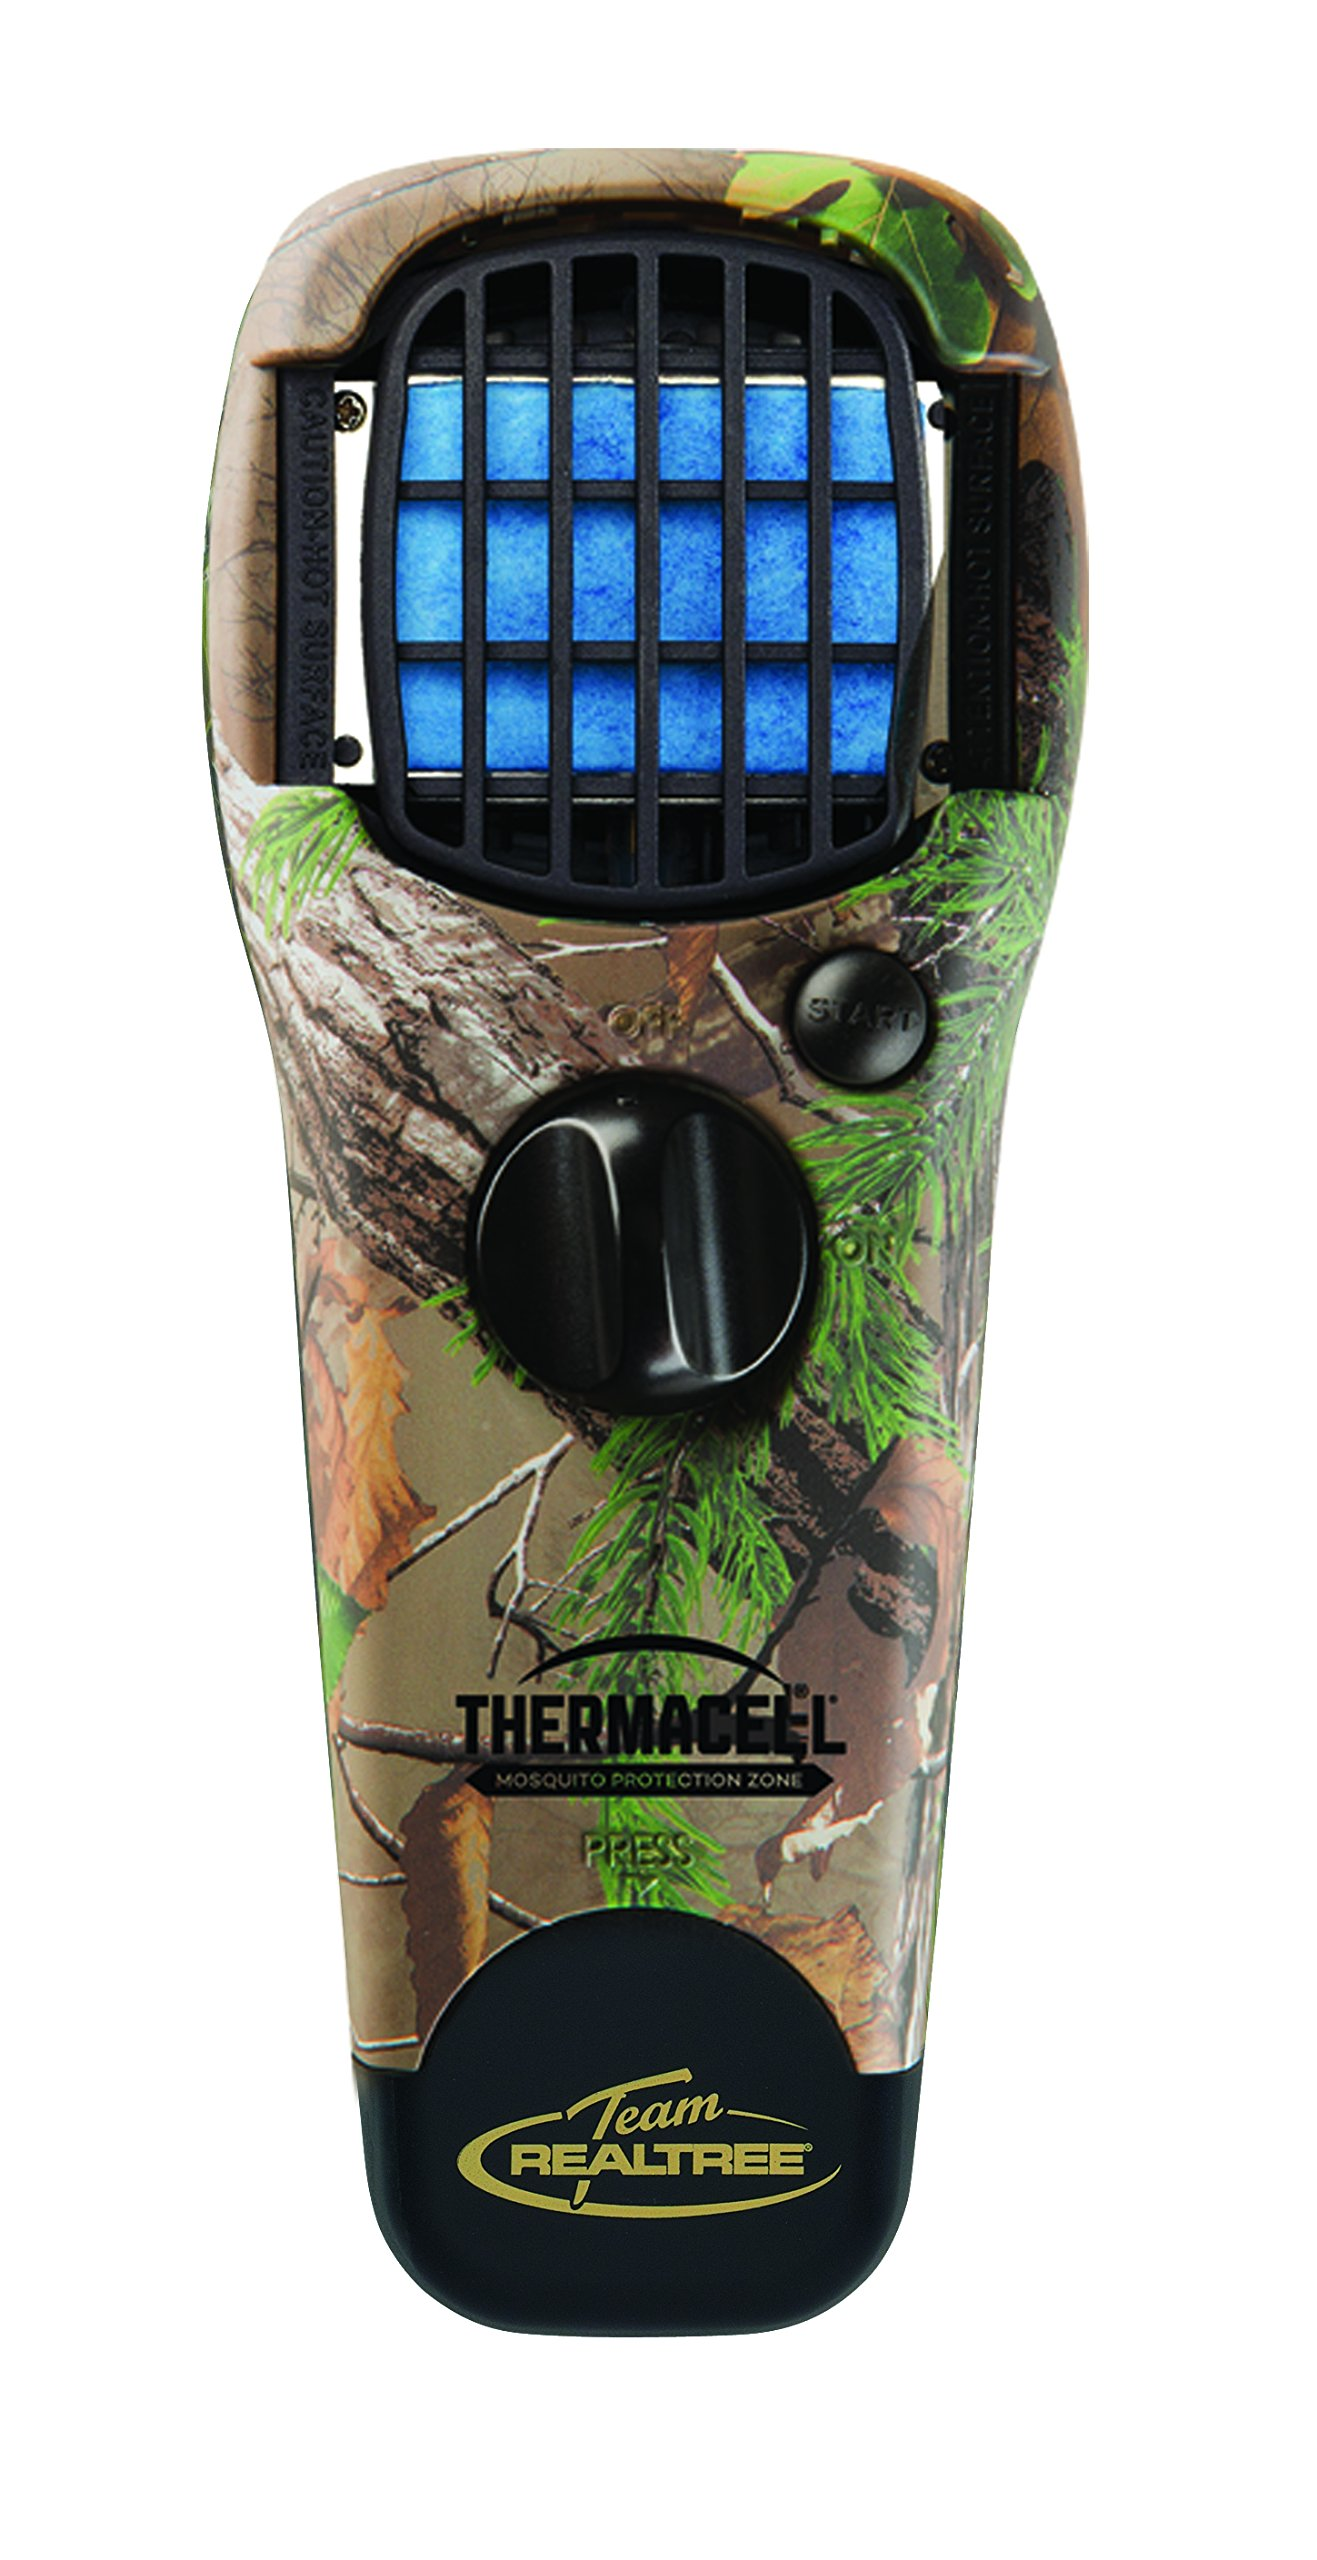 ThermacellMR-TJ Portable Mosquito Repeller, Realtree Xtra Green